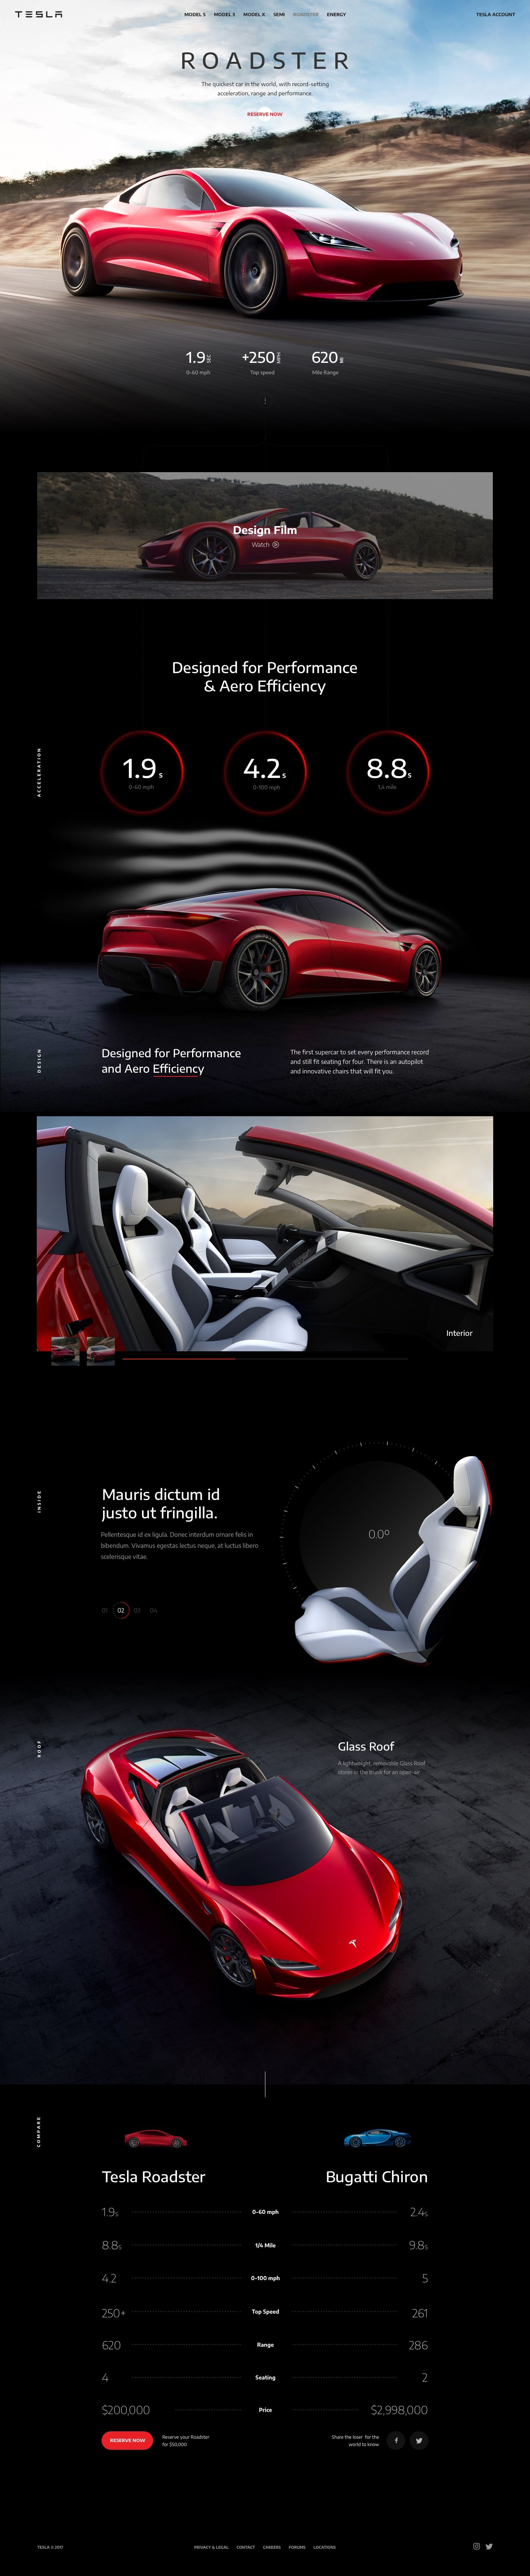 Roadster landing | UI Inspiration | Pinterest | Pagina web, Coches ...